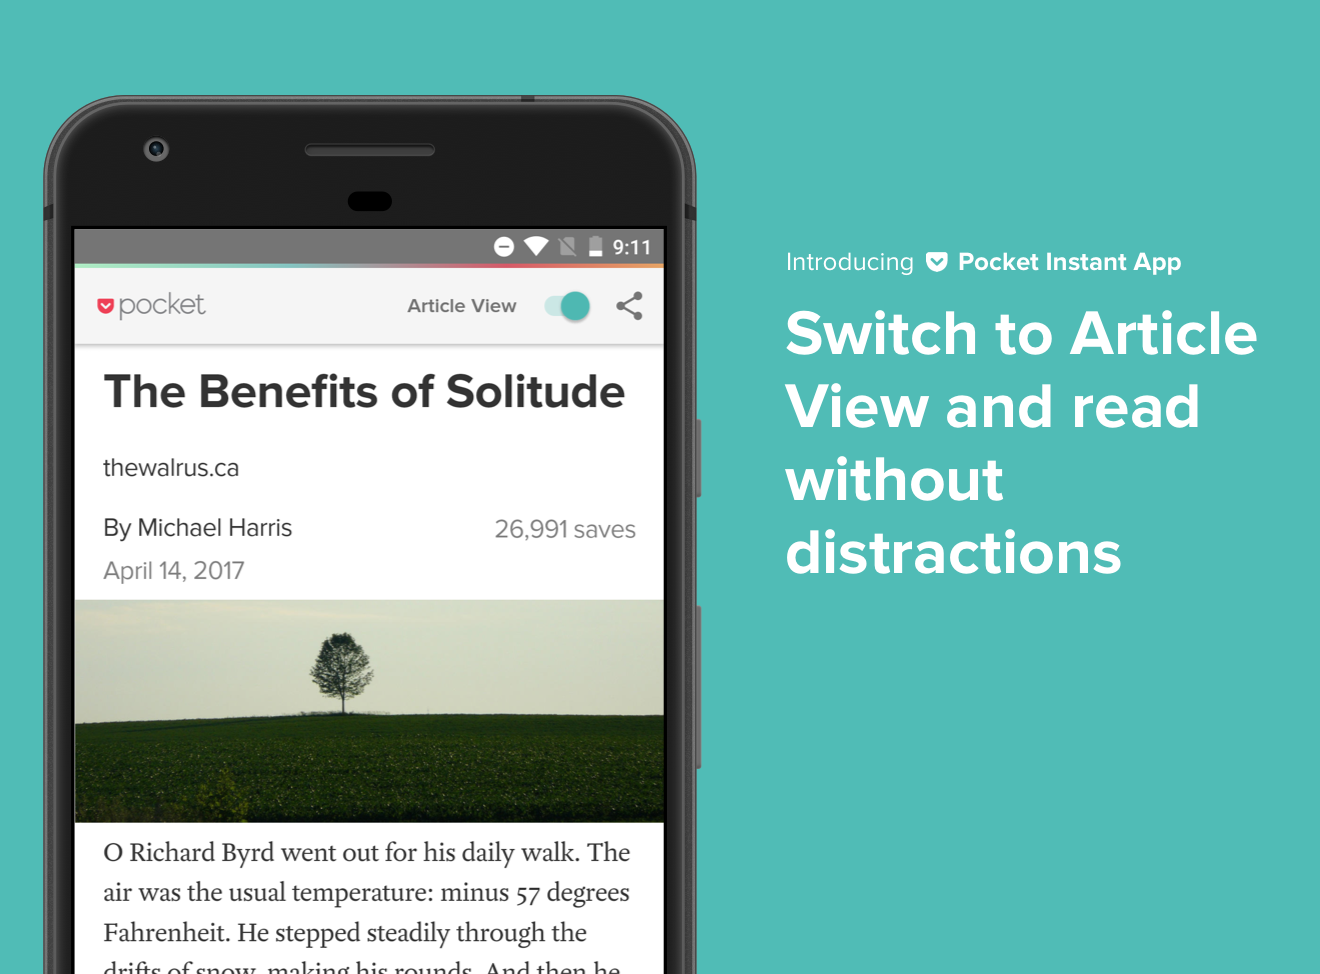 Pocket Instant App - Article View